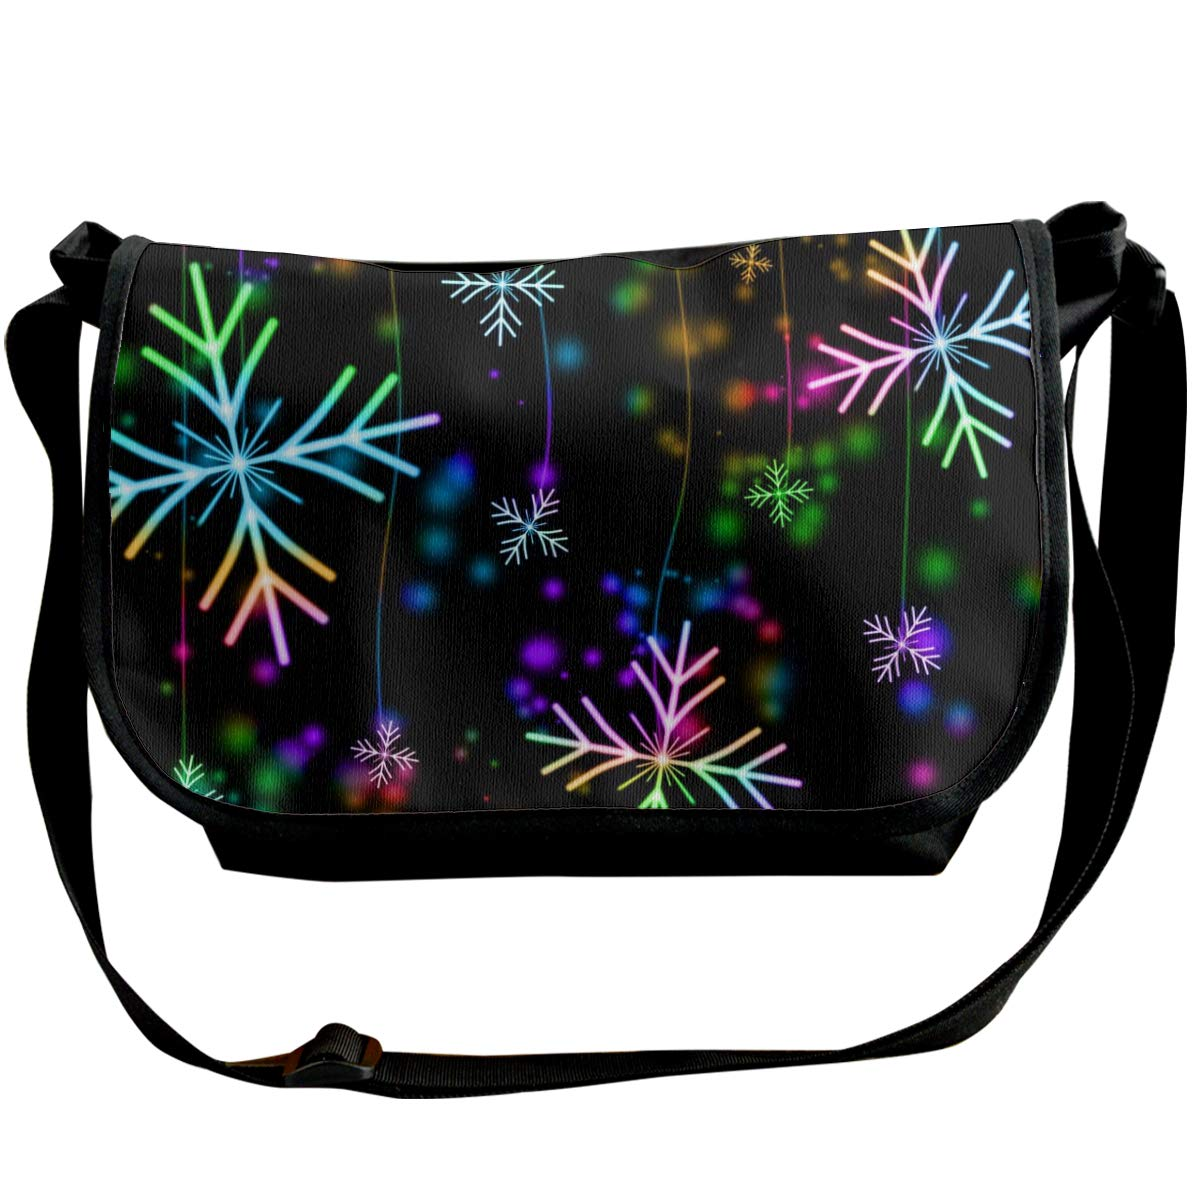 Taslilye Snowflake Snow Winter Christmas Holiday Colored Colorful Personalized Wide Crossbody Shoulder Bag For Men And Women For Daily Work Or Travel